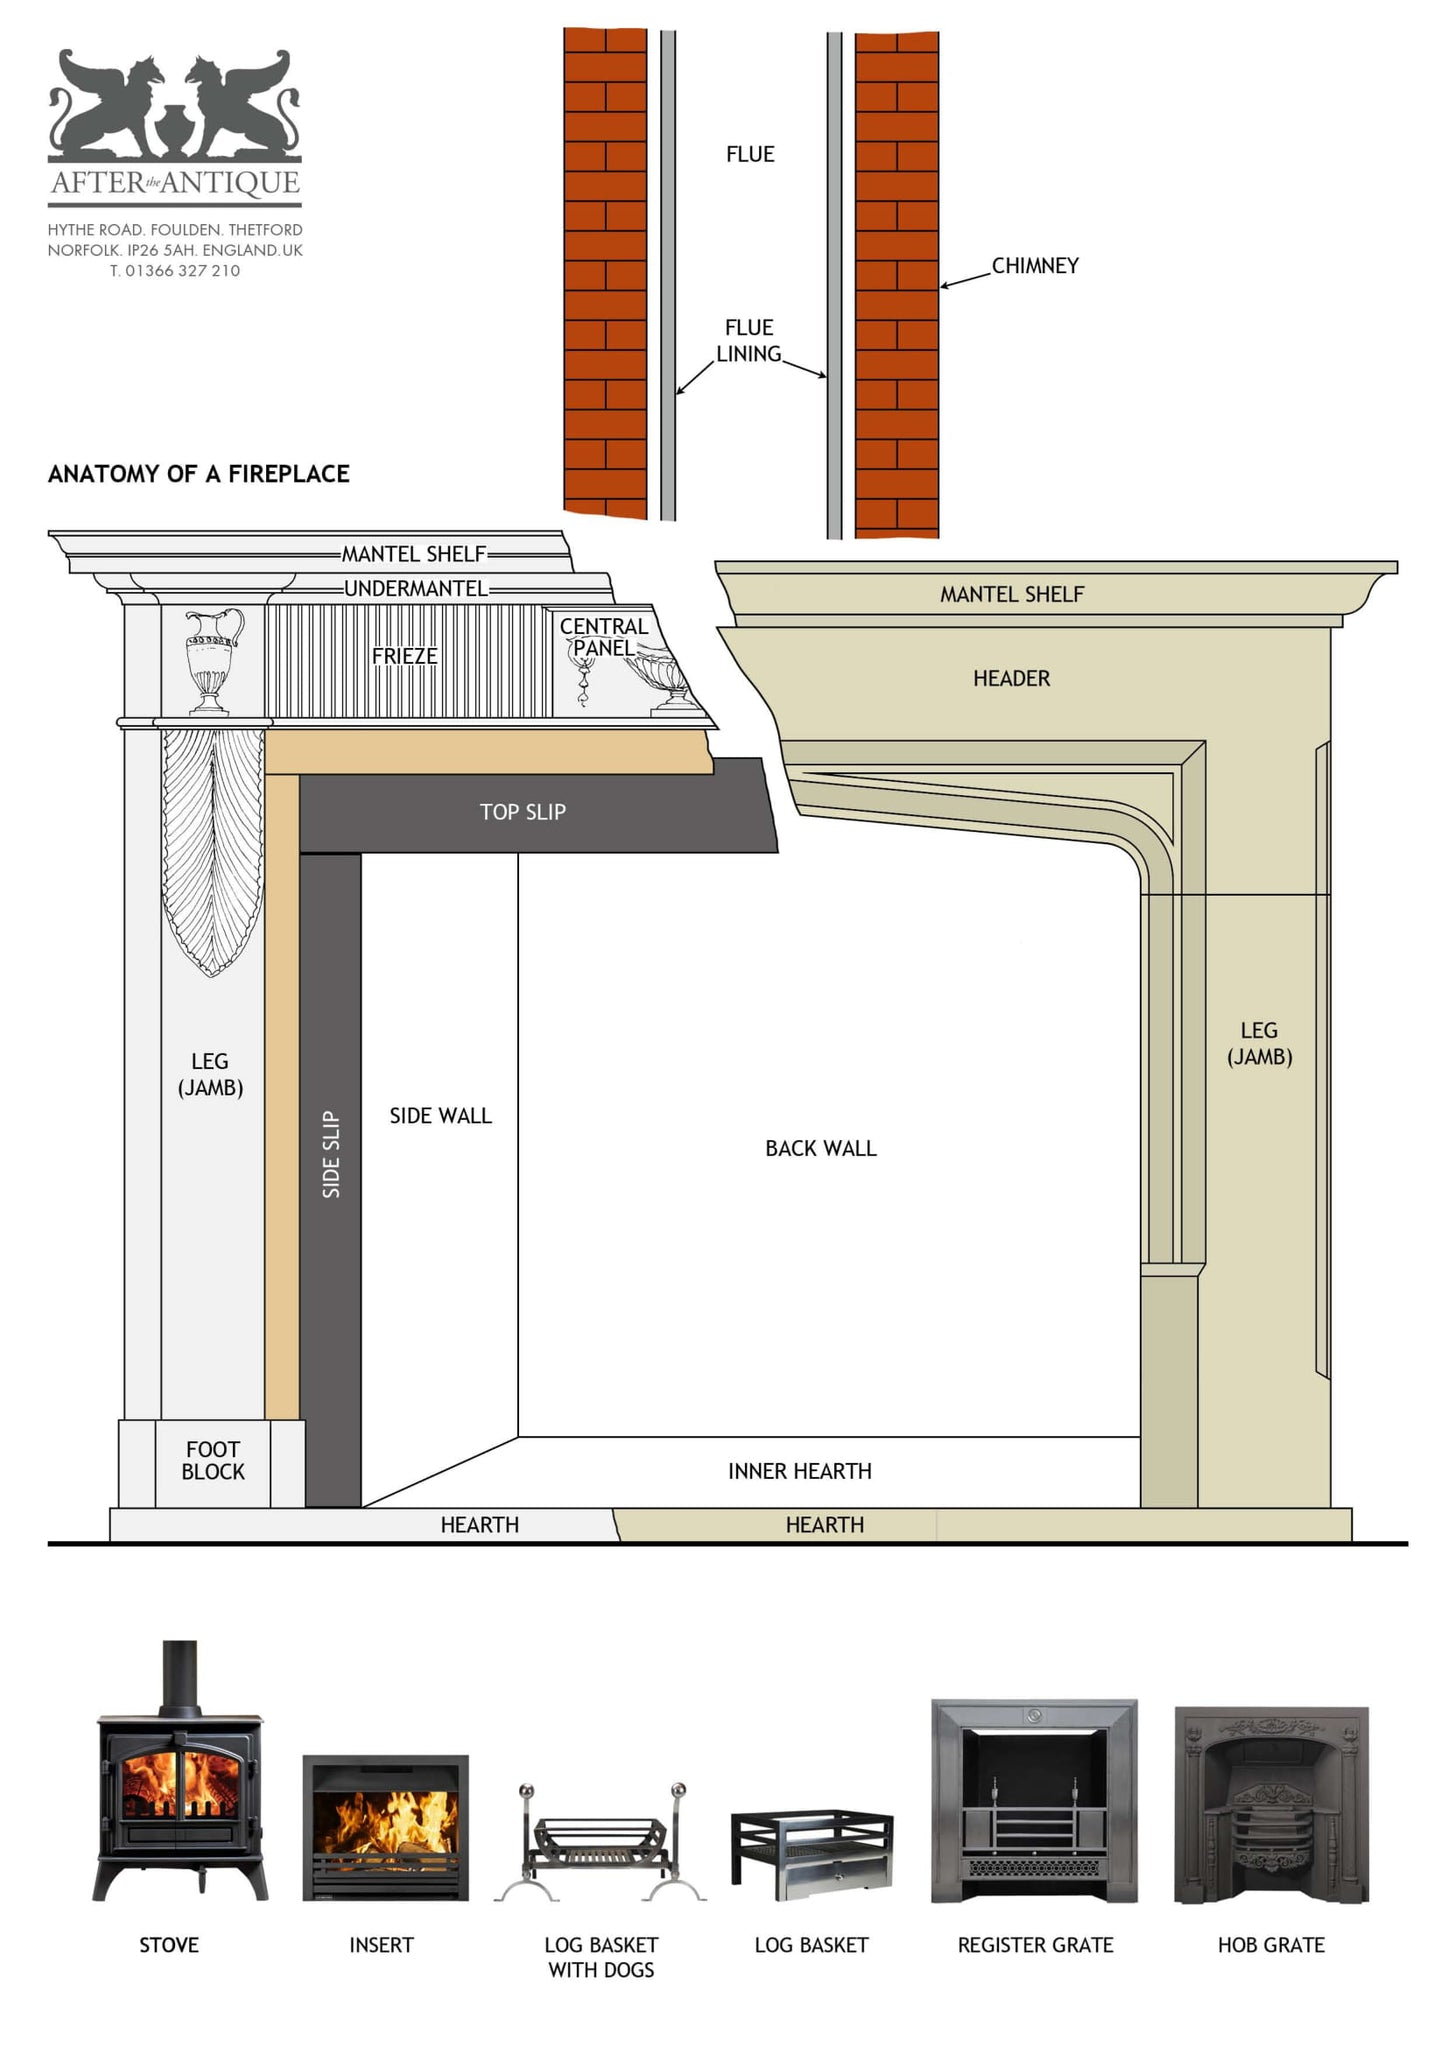 Anatomy Of A Fireplace After The Antique